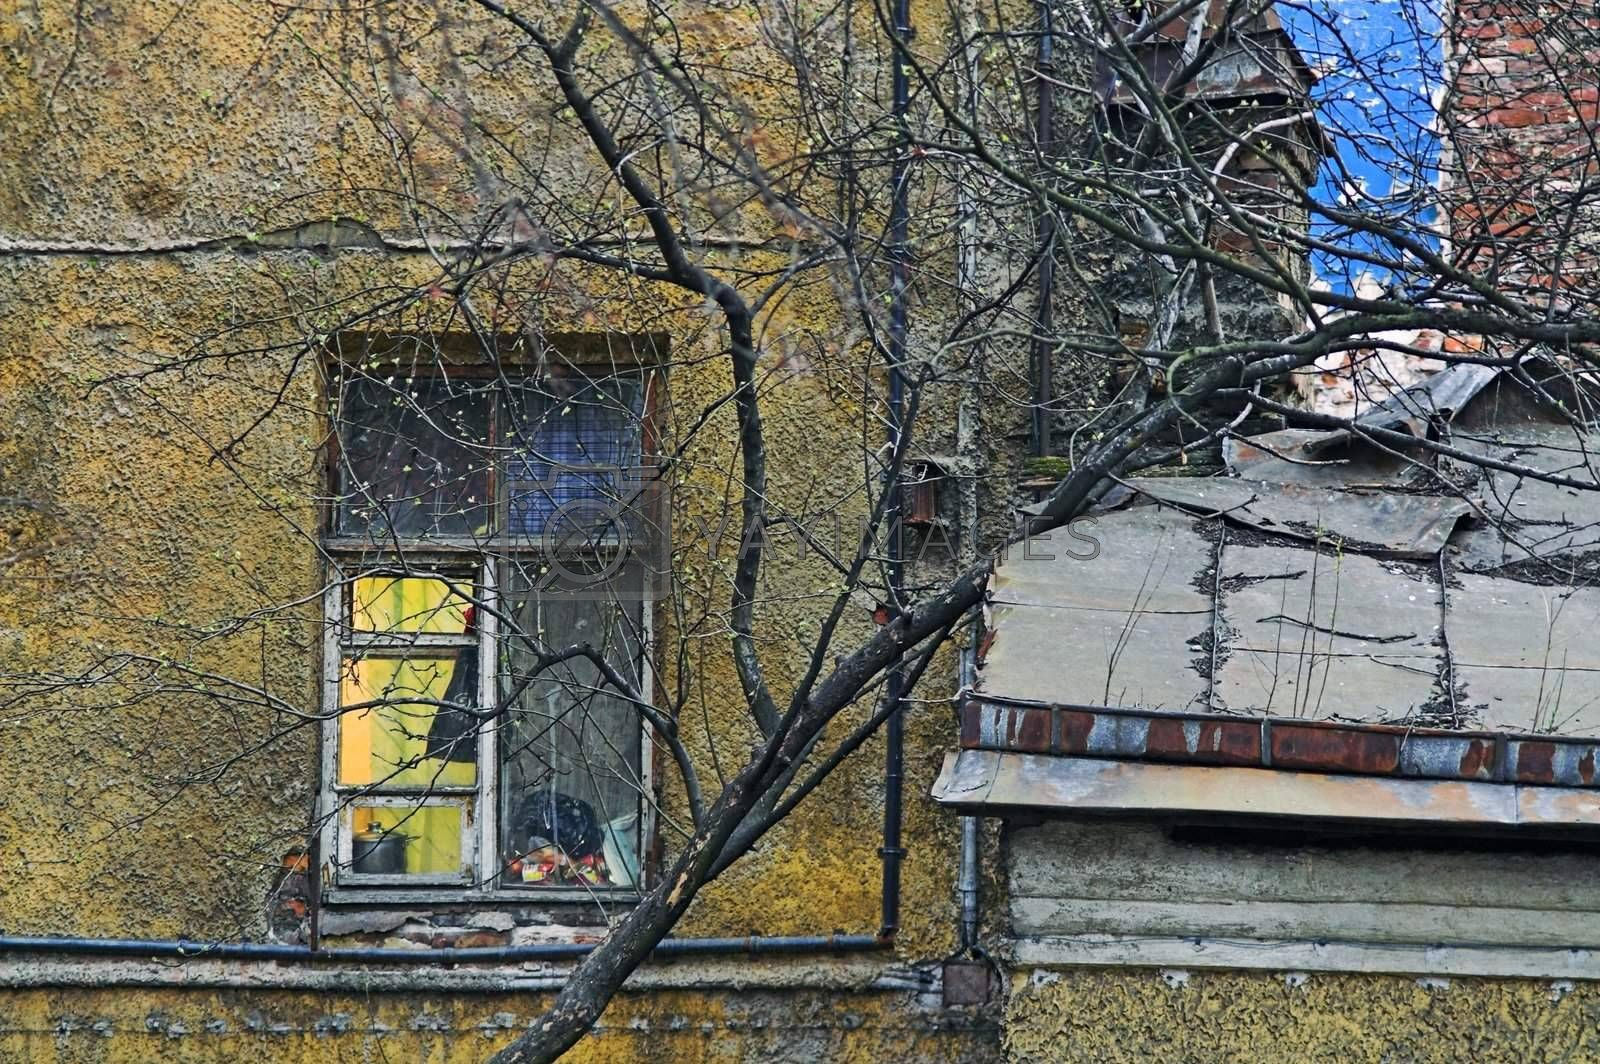 Windows of an old and destructed apartment building at evening